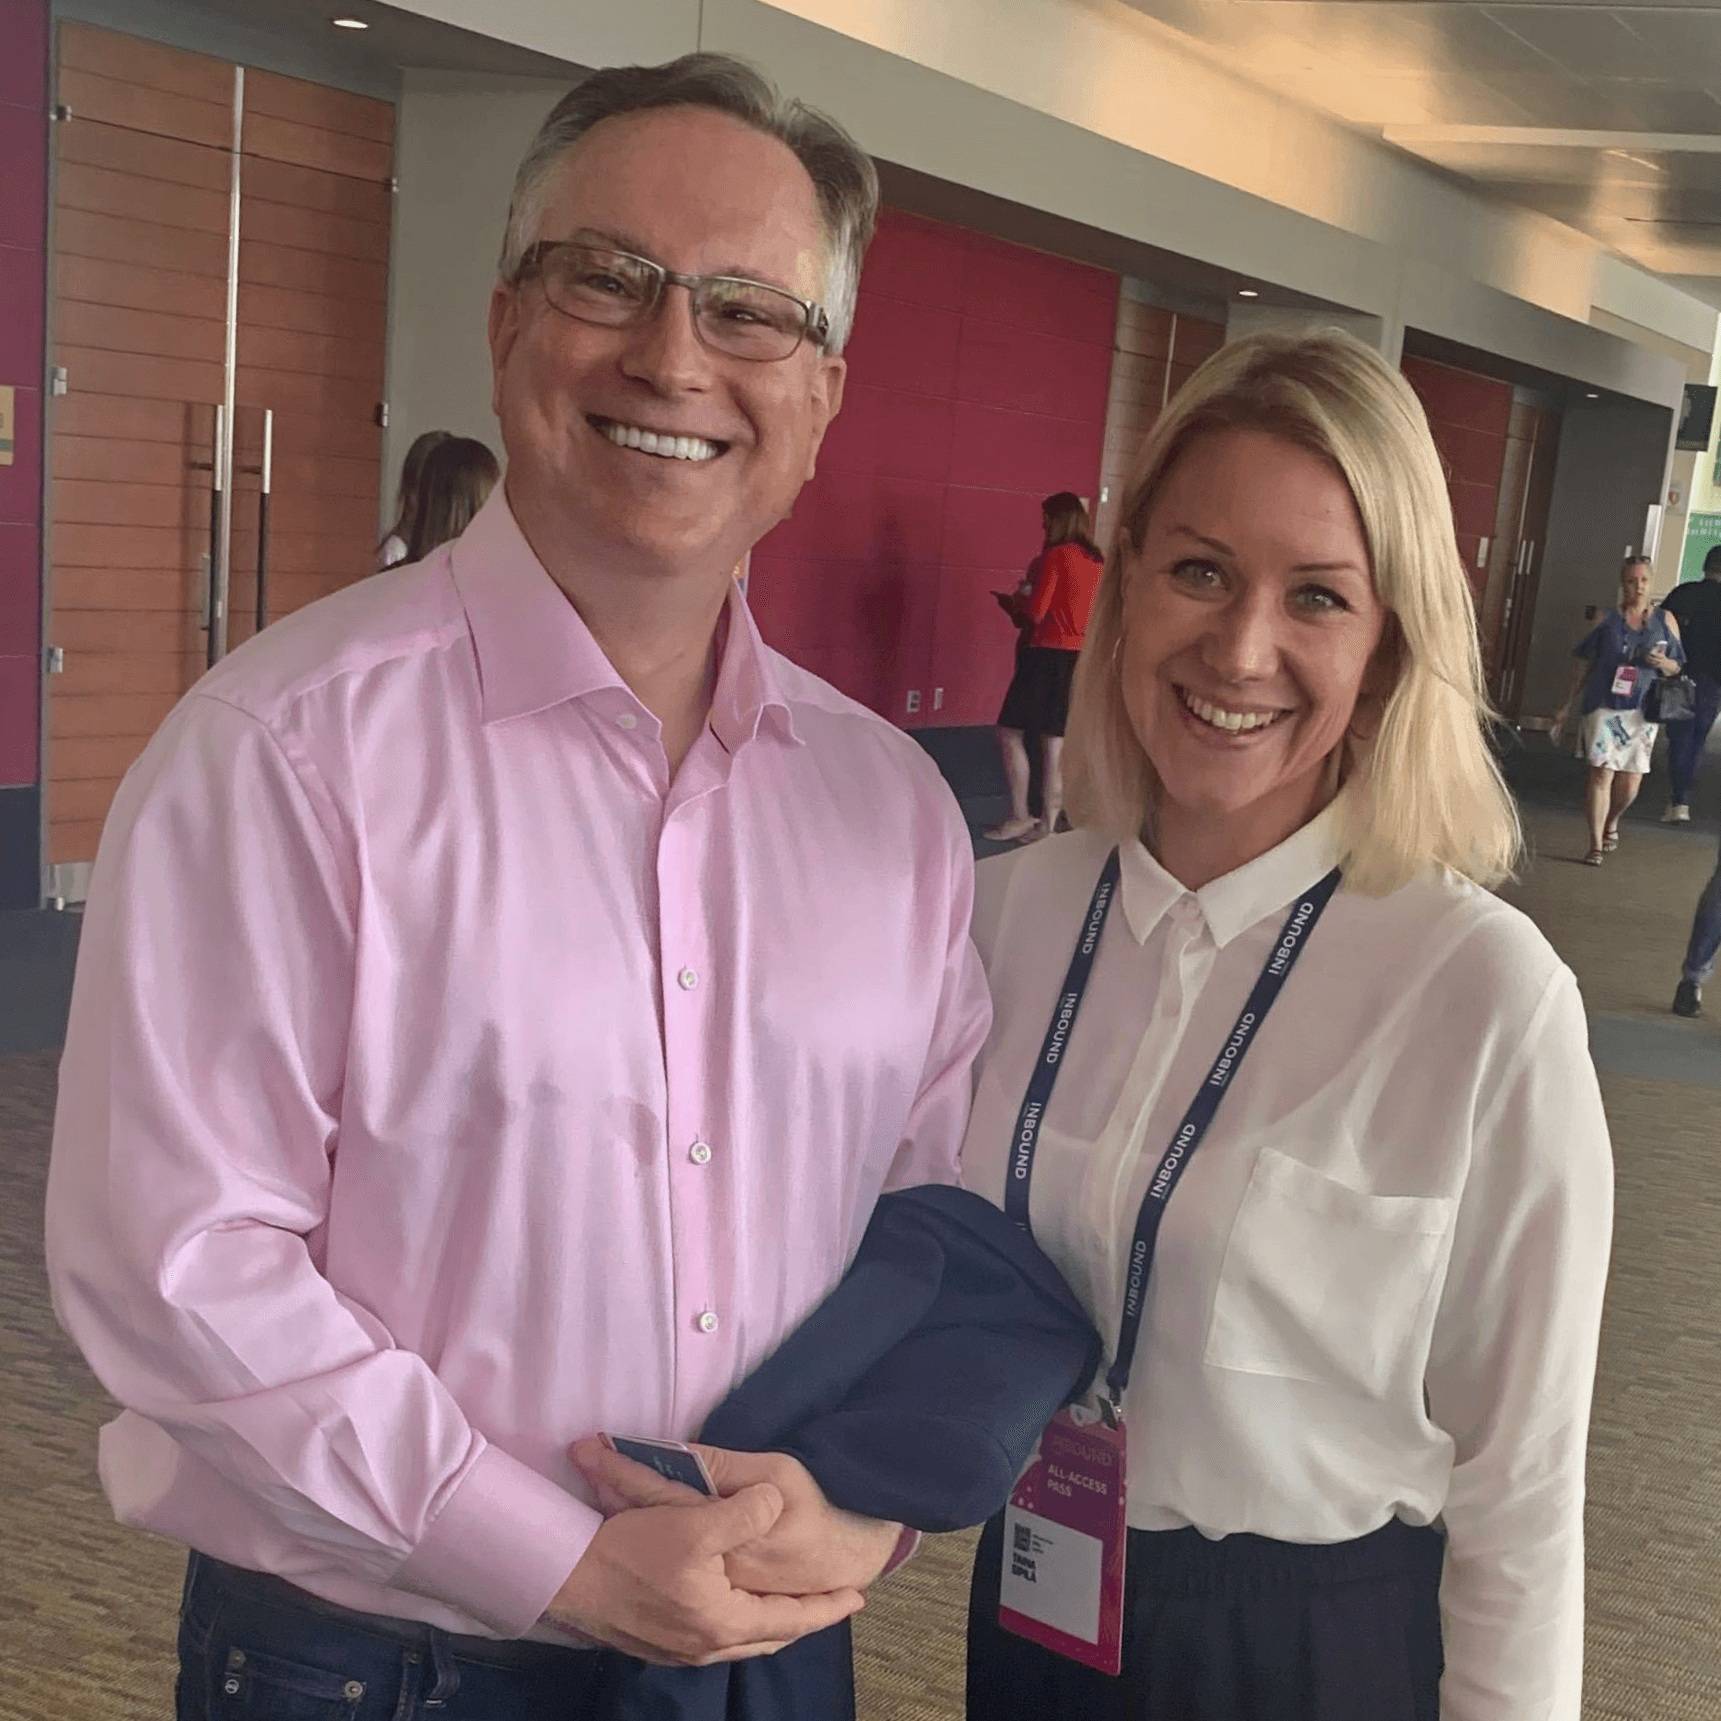 Scott Brinker, VP Platform Ecosystems HubSpot and Taina Sipila, Founder and CEO of Dear Lucy at INBOUND 19 congress in Boston.